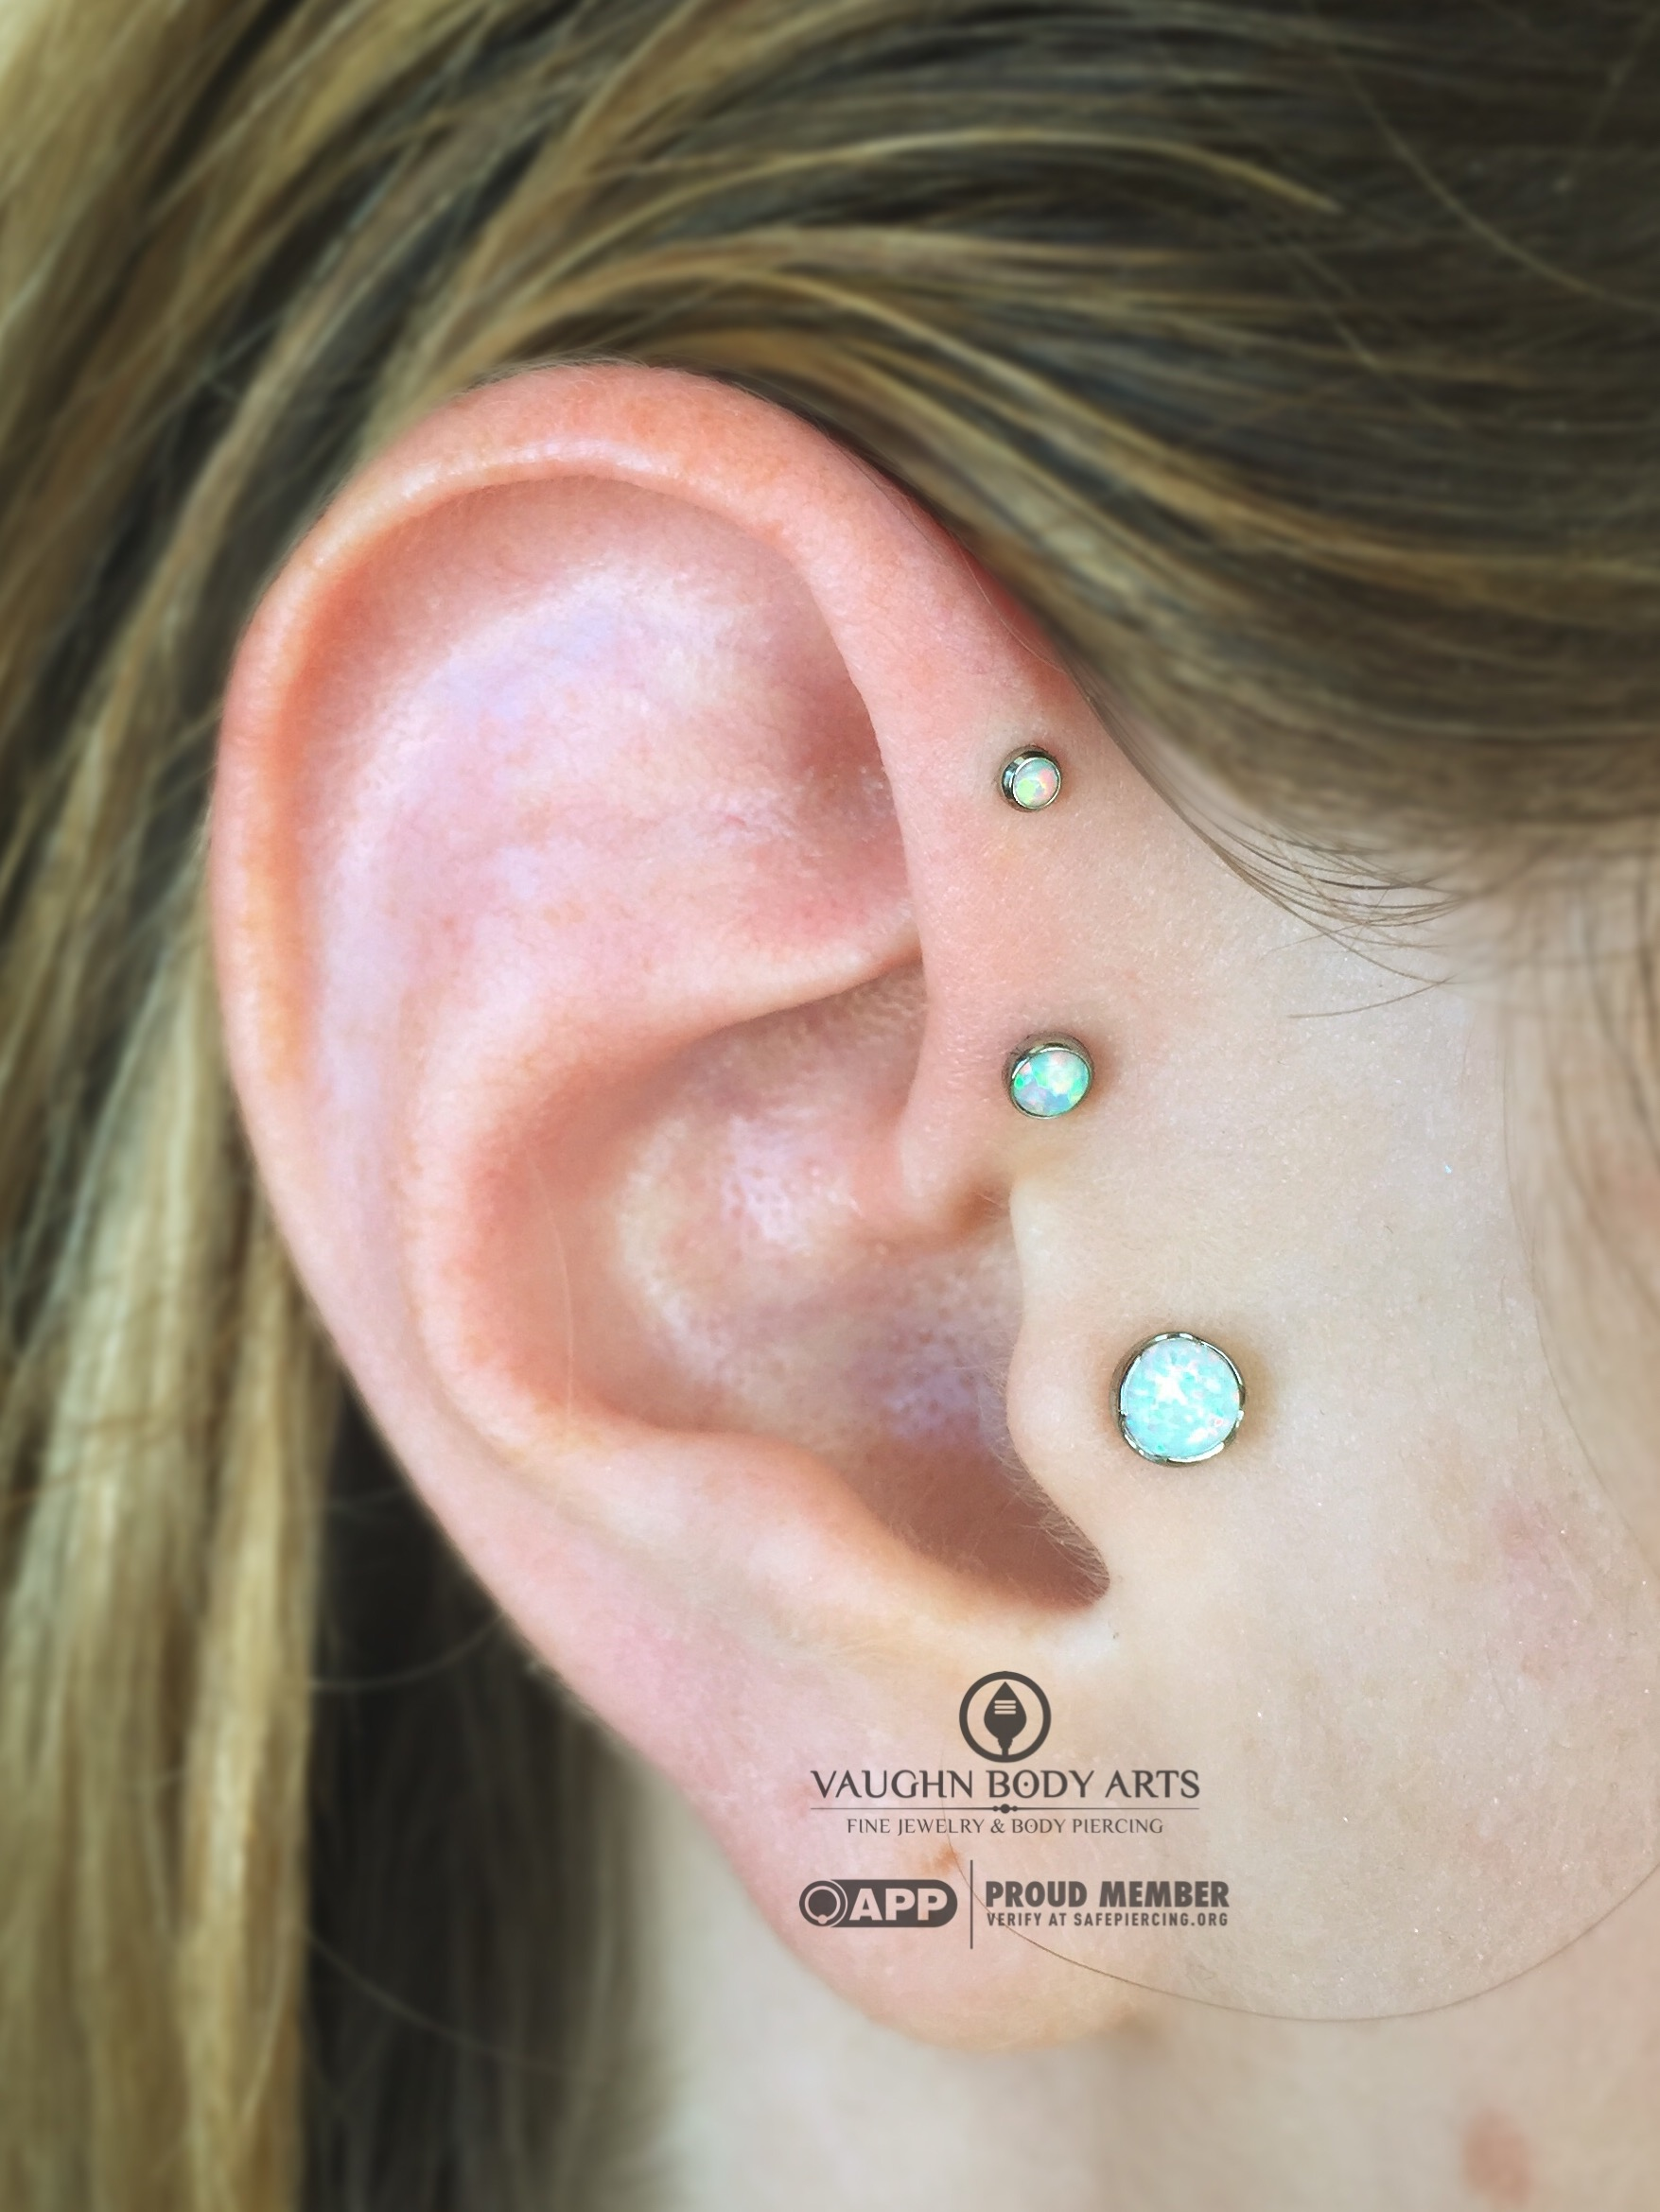 Double forward helix and tragus piercings with titanium jewelry from Anatometal.